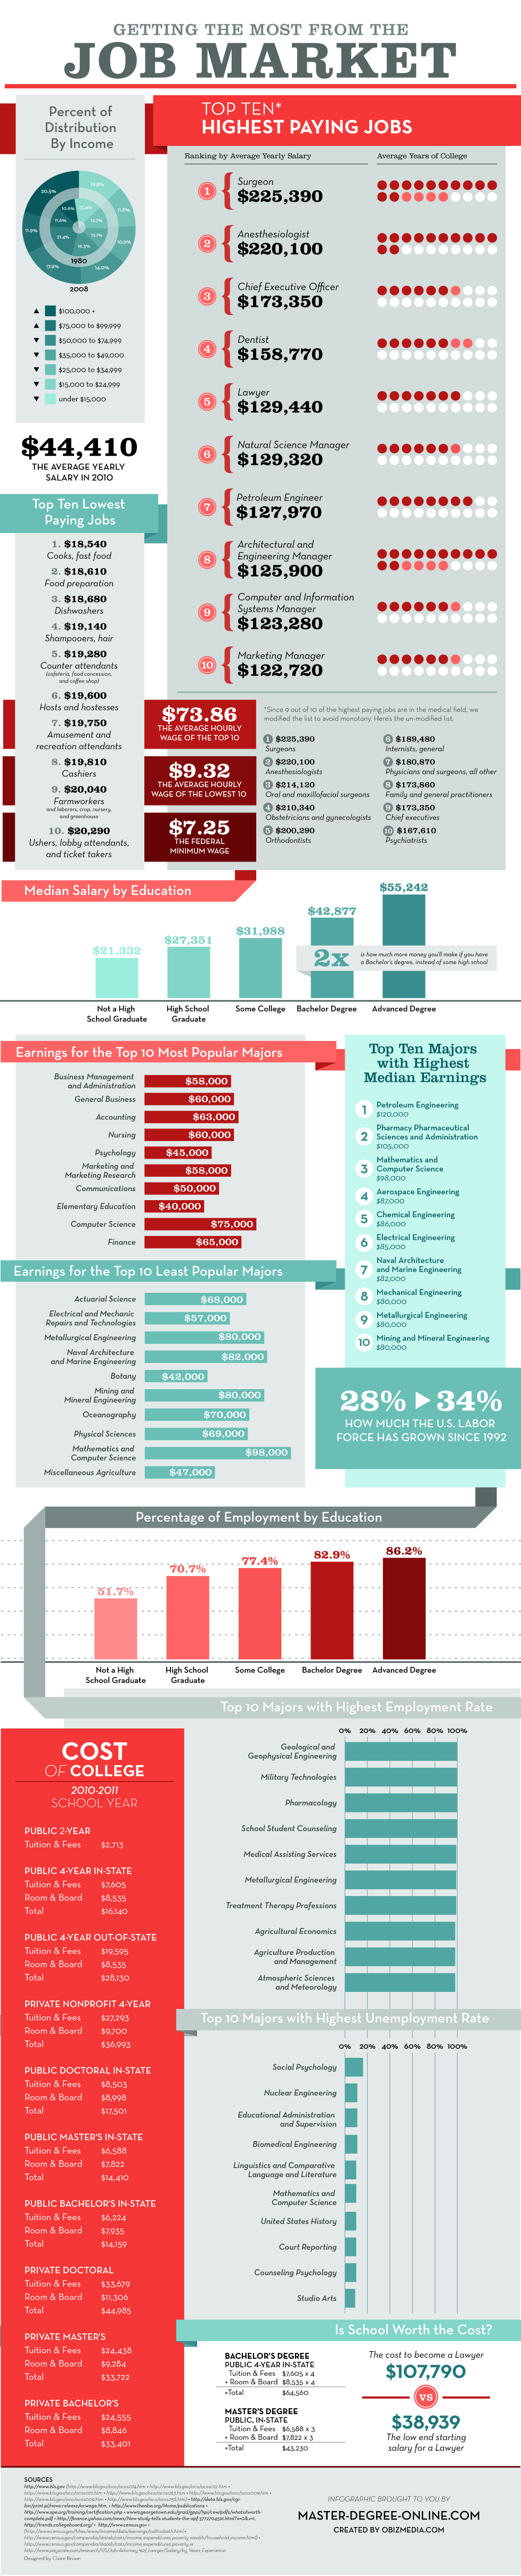 Getting The Most From The Job Market, An Infographic